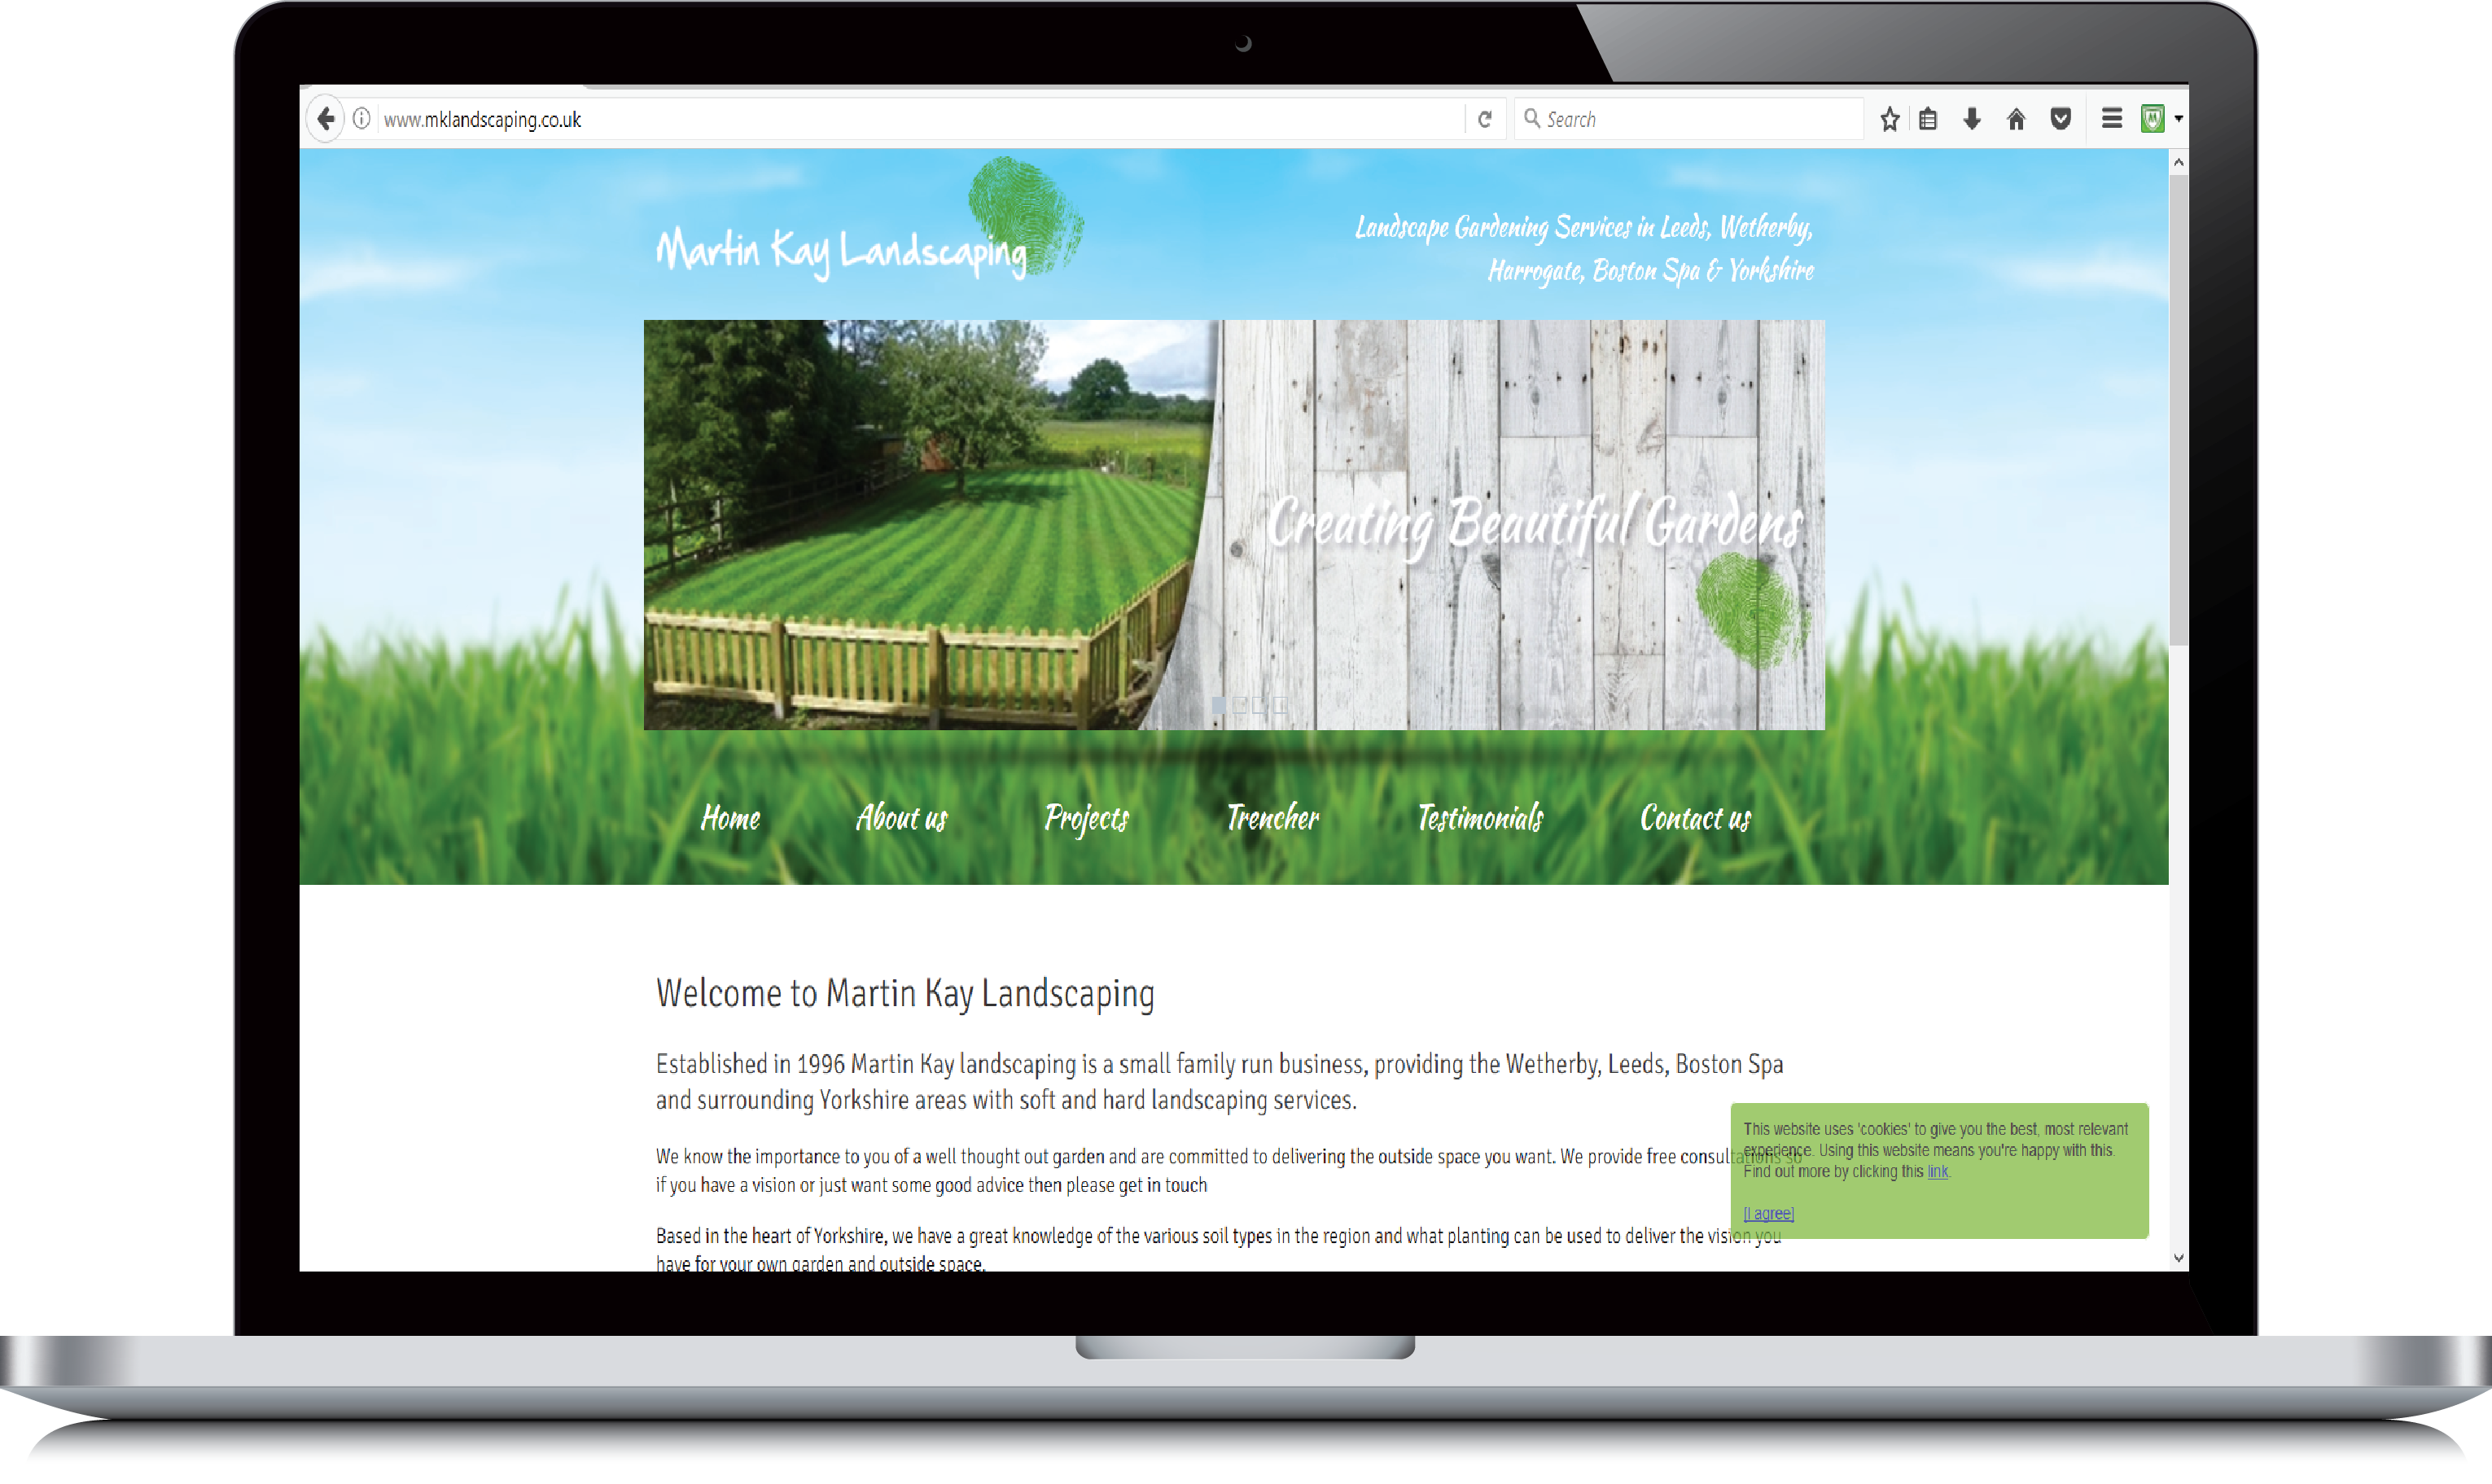 Martin Kay Landscaping website example view